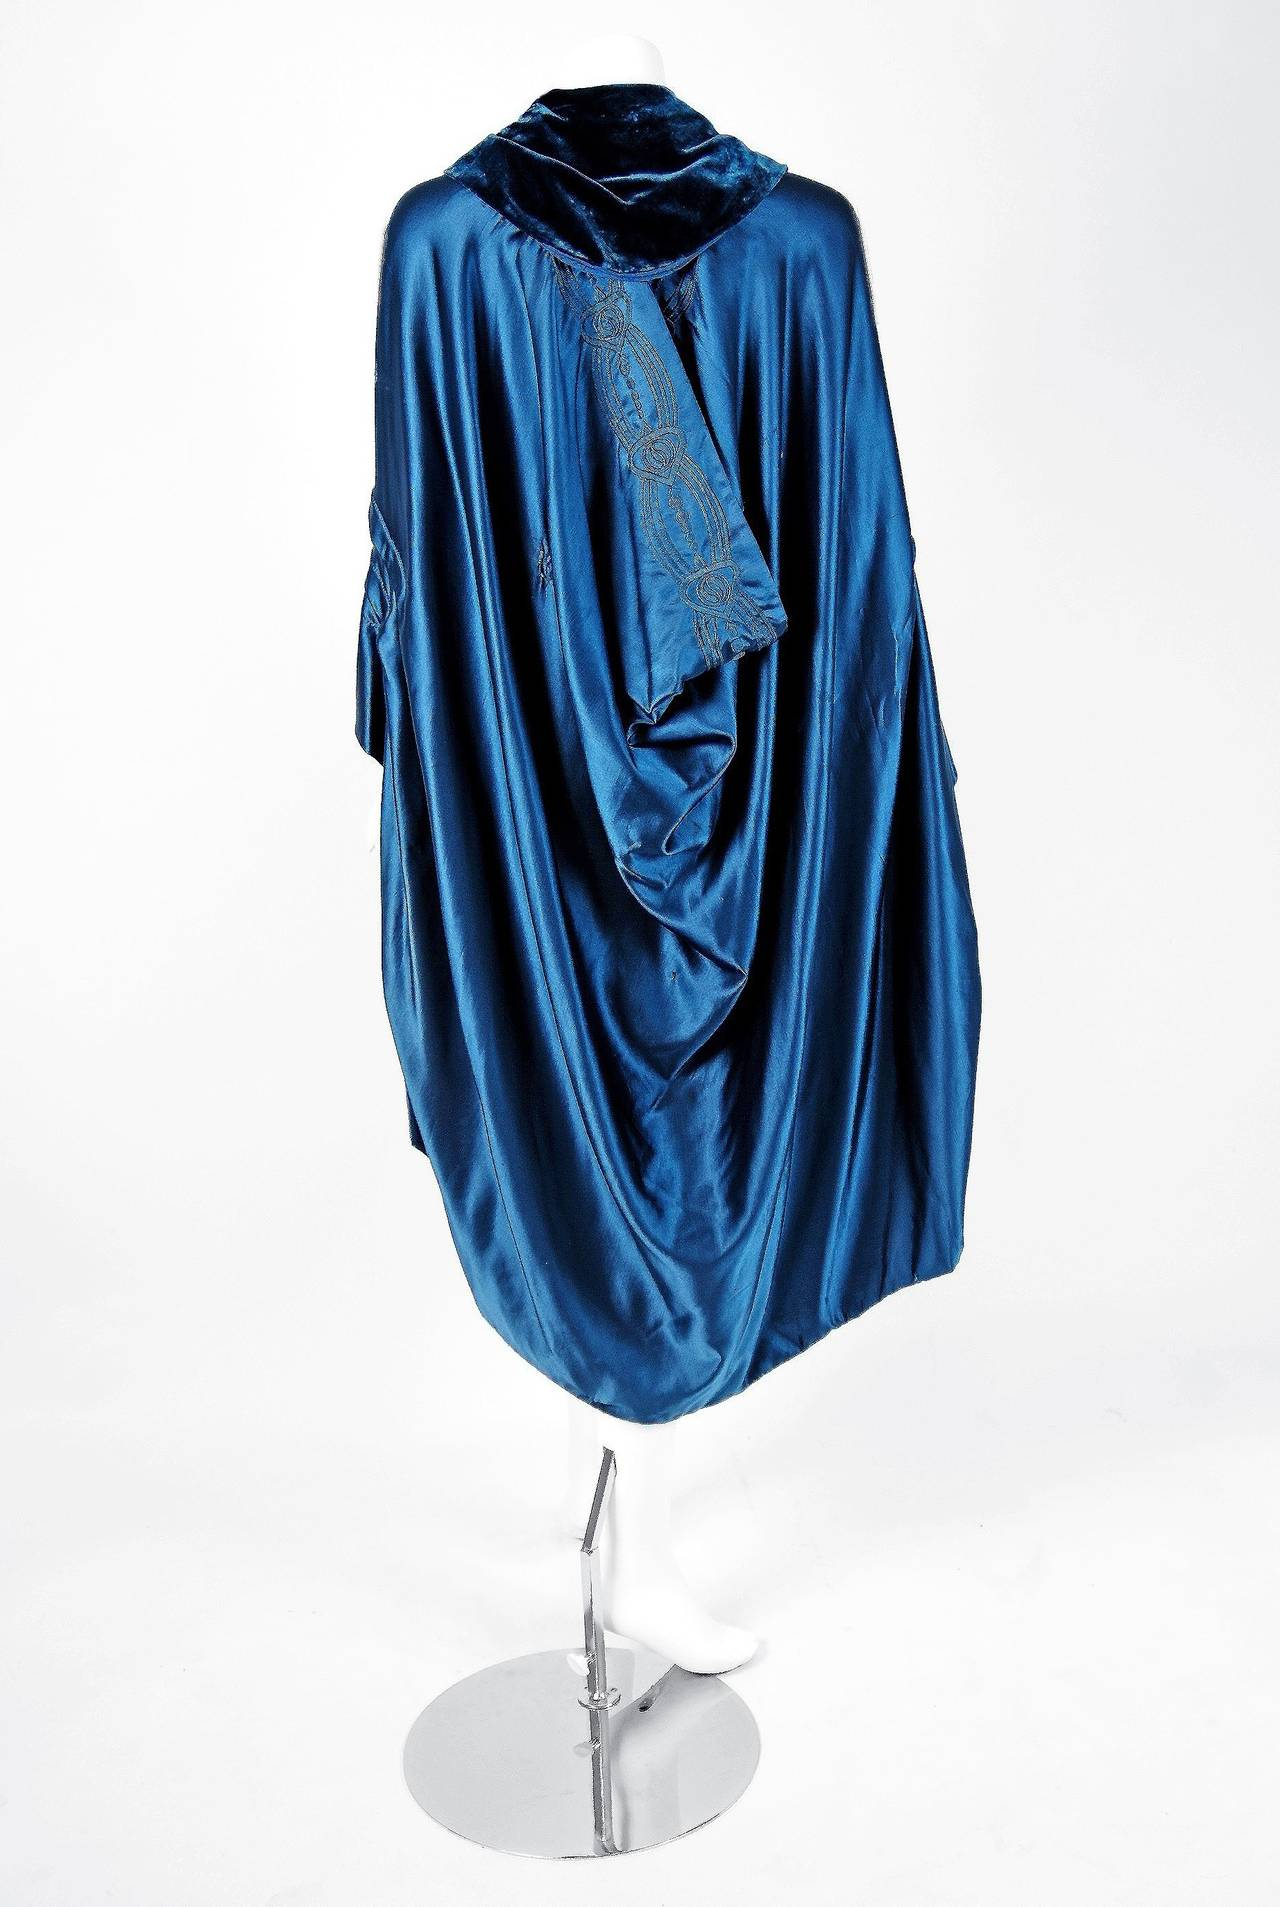 Liberty Couture Steel Blue Embroidered Silk Art Nouveau Draped Coat Cape, 1918  For Sale 1